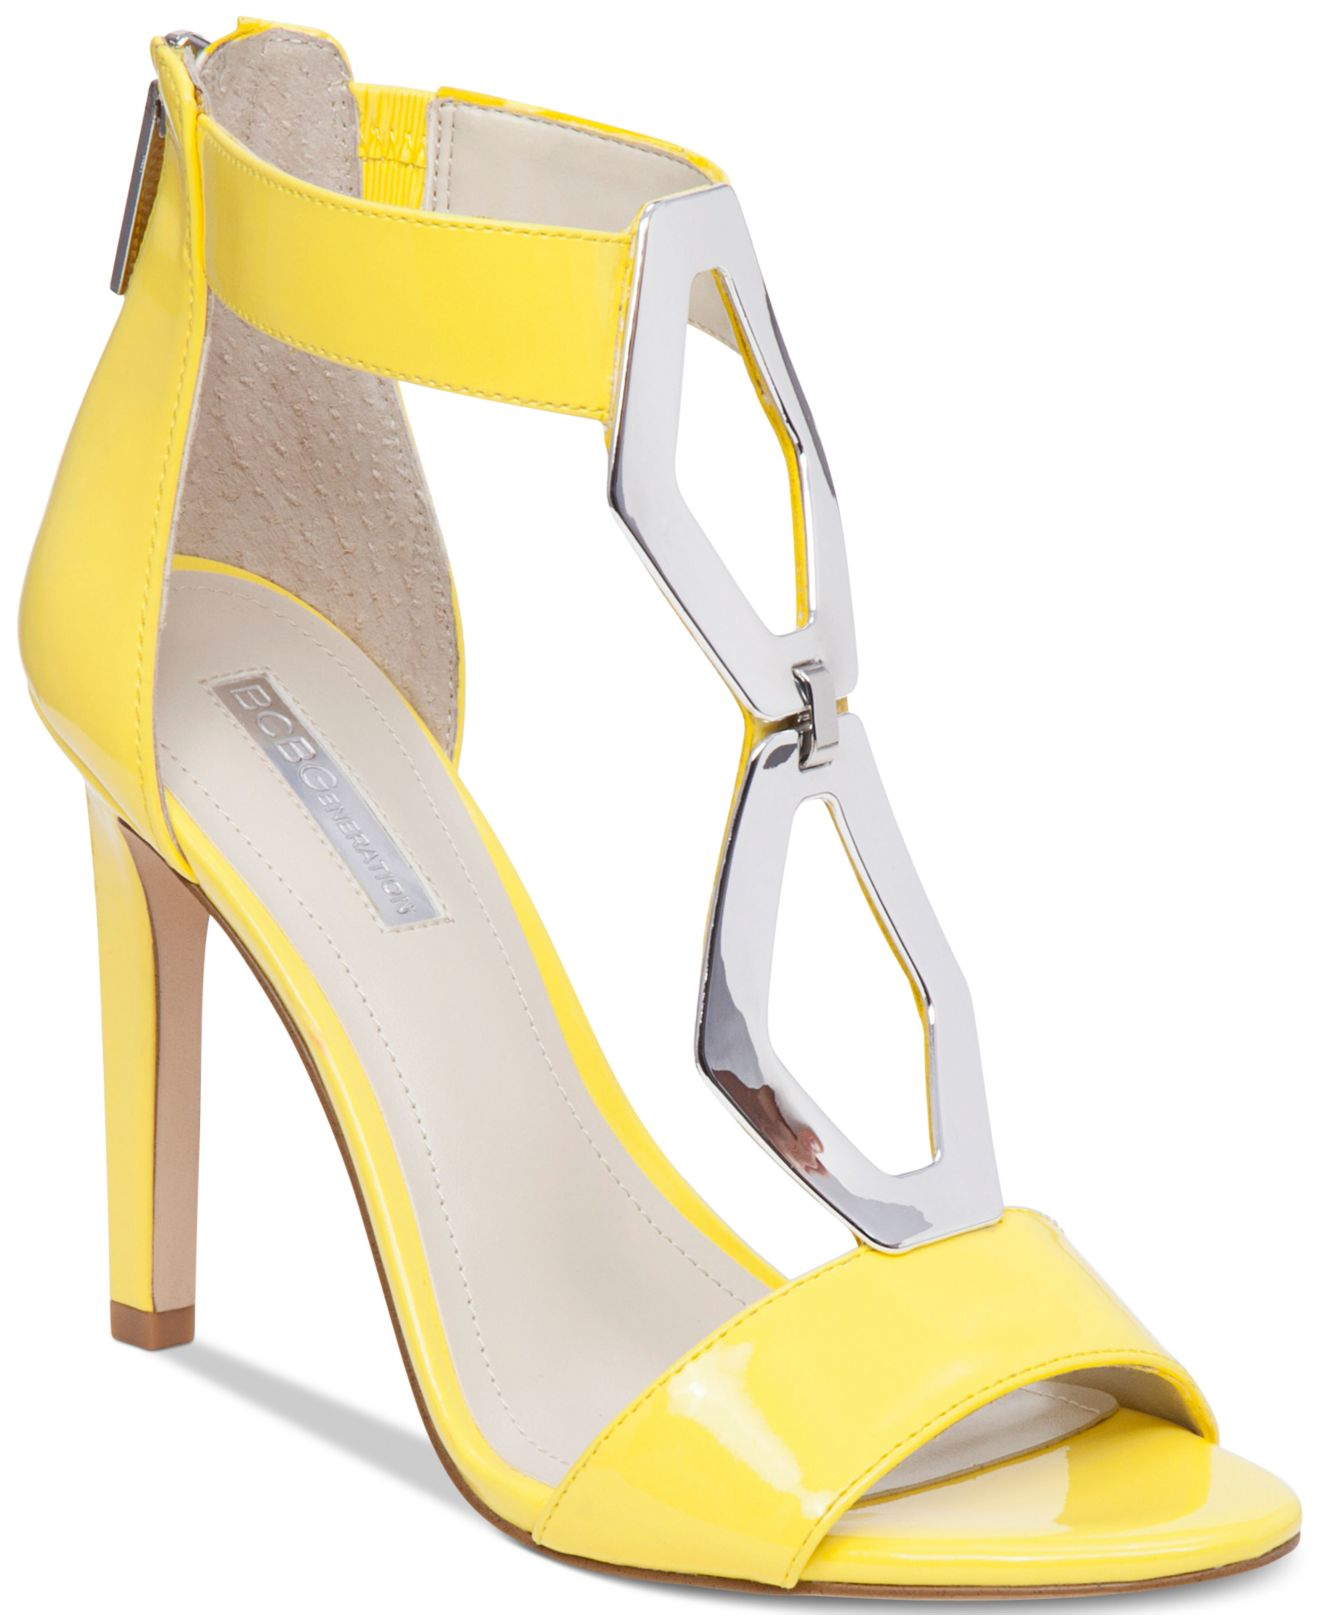 Bcbgeneration Cayce Hardware Ankle-strap Pumps in Yellow | Lyst